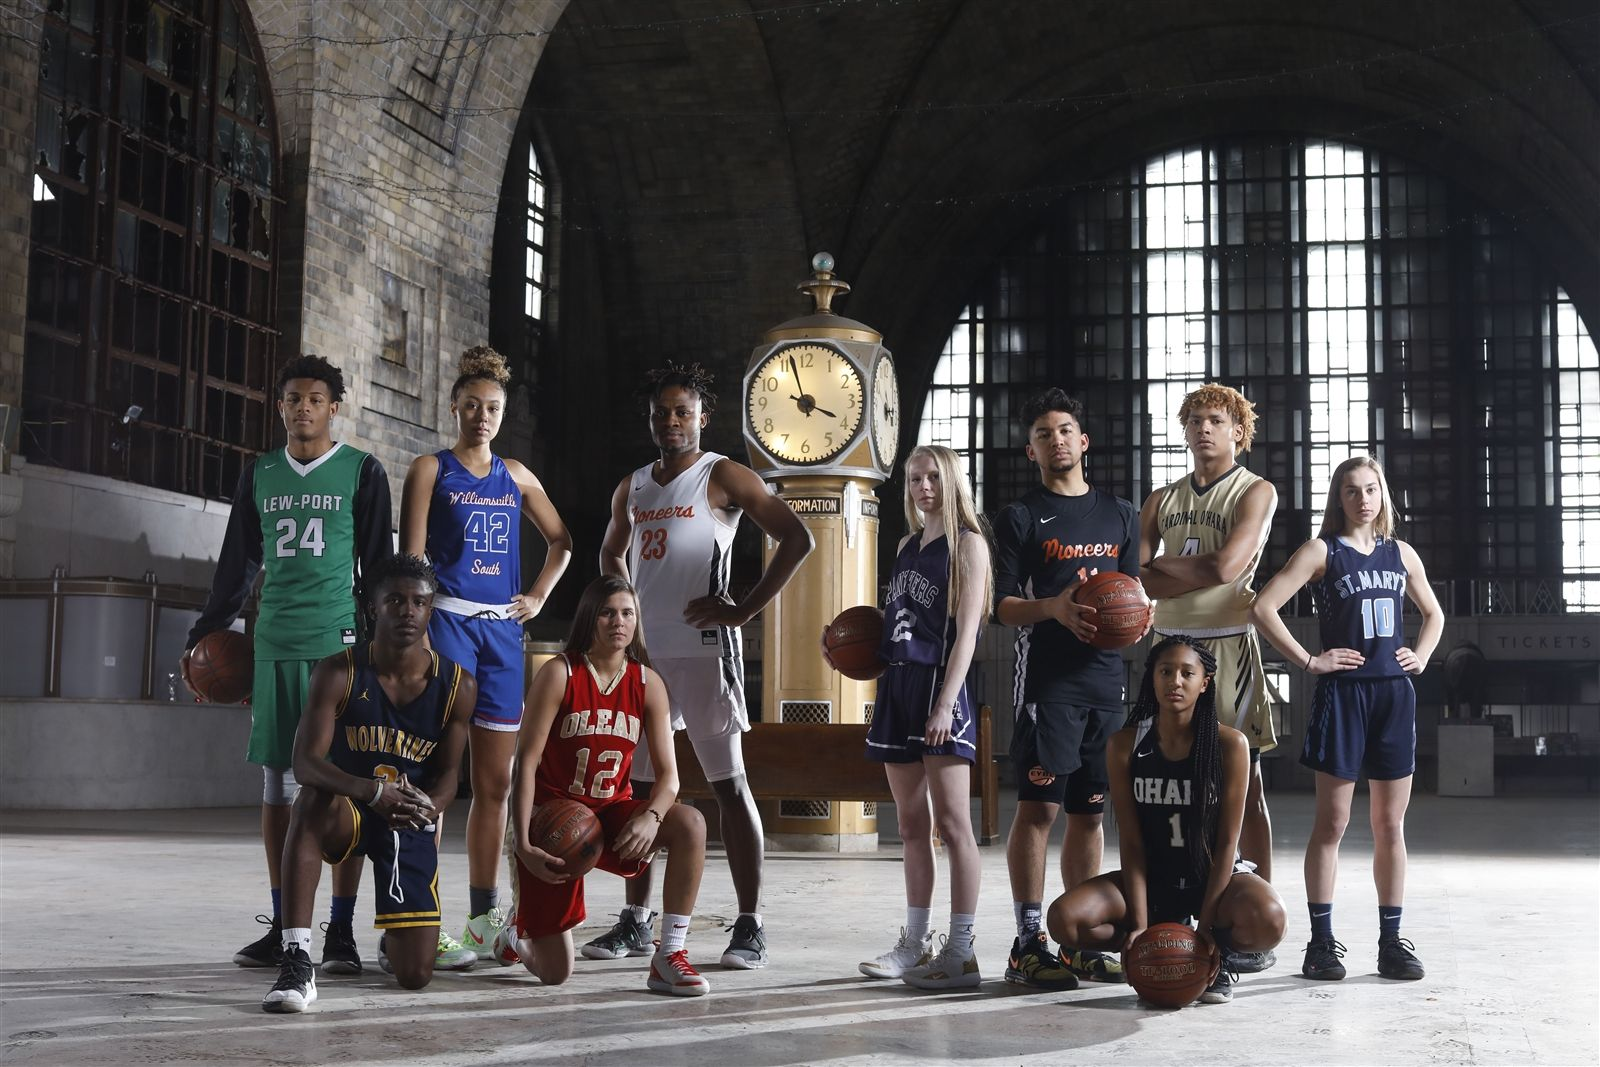 The All-WNY Basketball First Team: from left, Roddy Gayle (Lew-Port,) Willie Lightfoot (Niagara Falls,) Amari DeBerry (Williamsville South,) Sara Pfeiffer (Olean,) Quentin Nnagbo (Park,) Dani Haskell (Franklinville,) Noah Hutchins (Park,) Angel Parker (Cardinal O'Hara,) Justin Hemphill (Cardinal O'Hara) and Shay Ciezki (St. Mary's of Lancaster) at the Central Terminal.